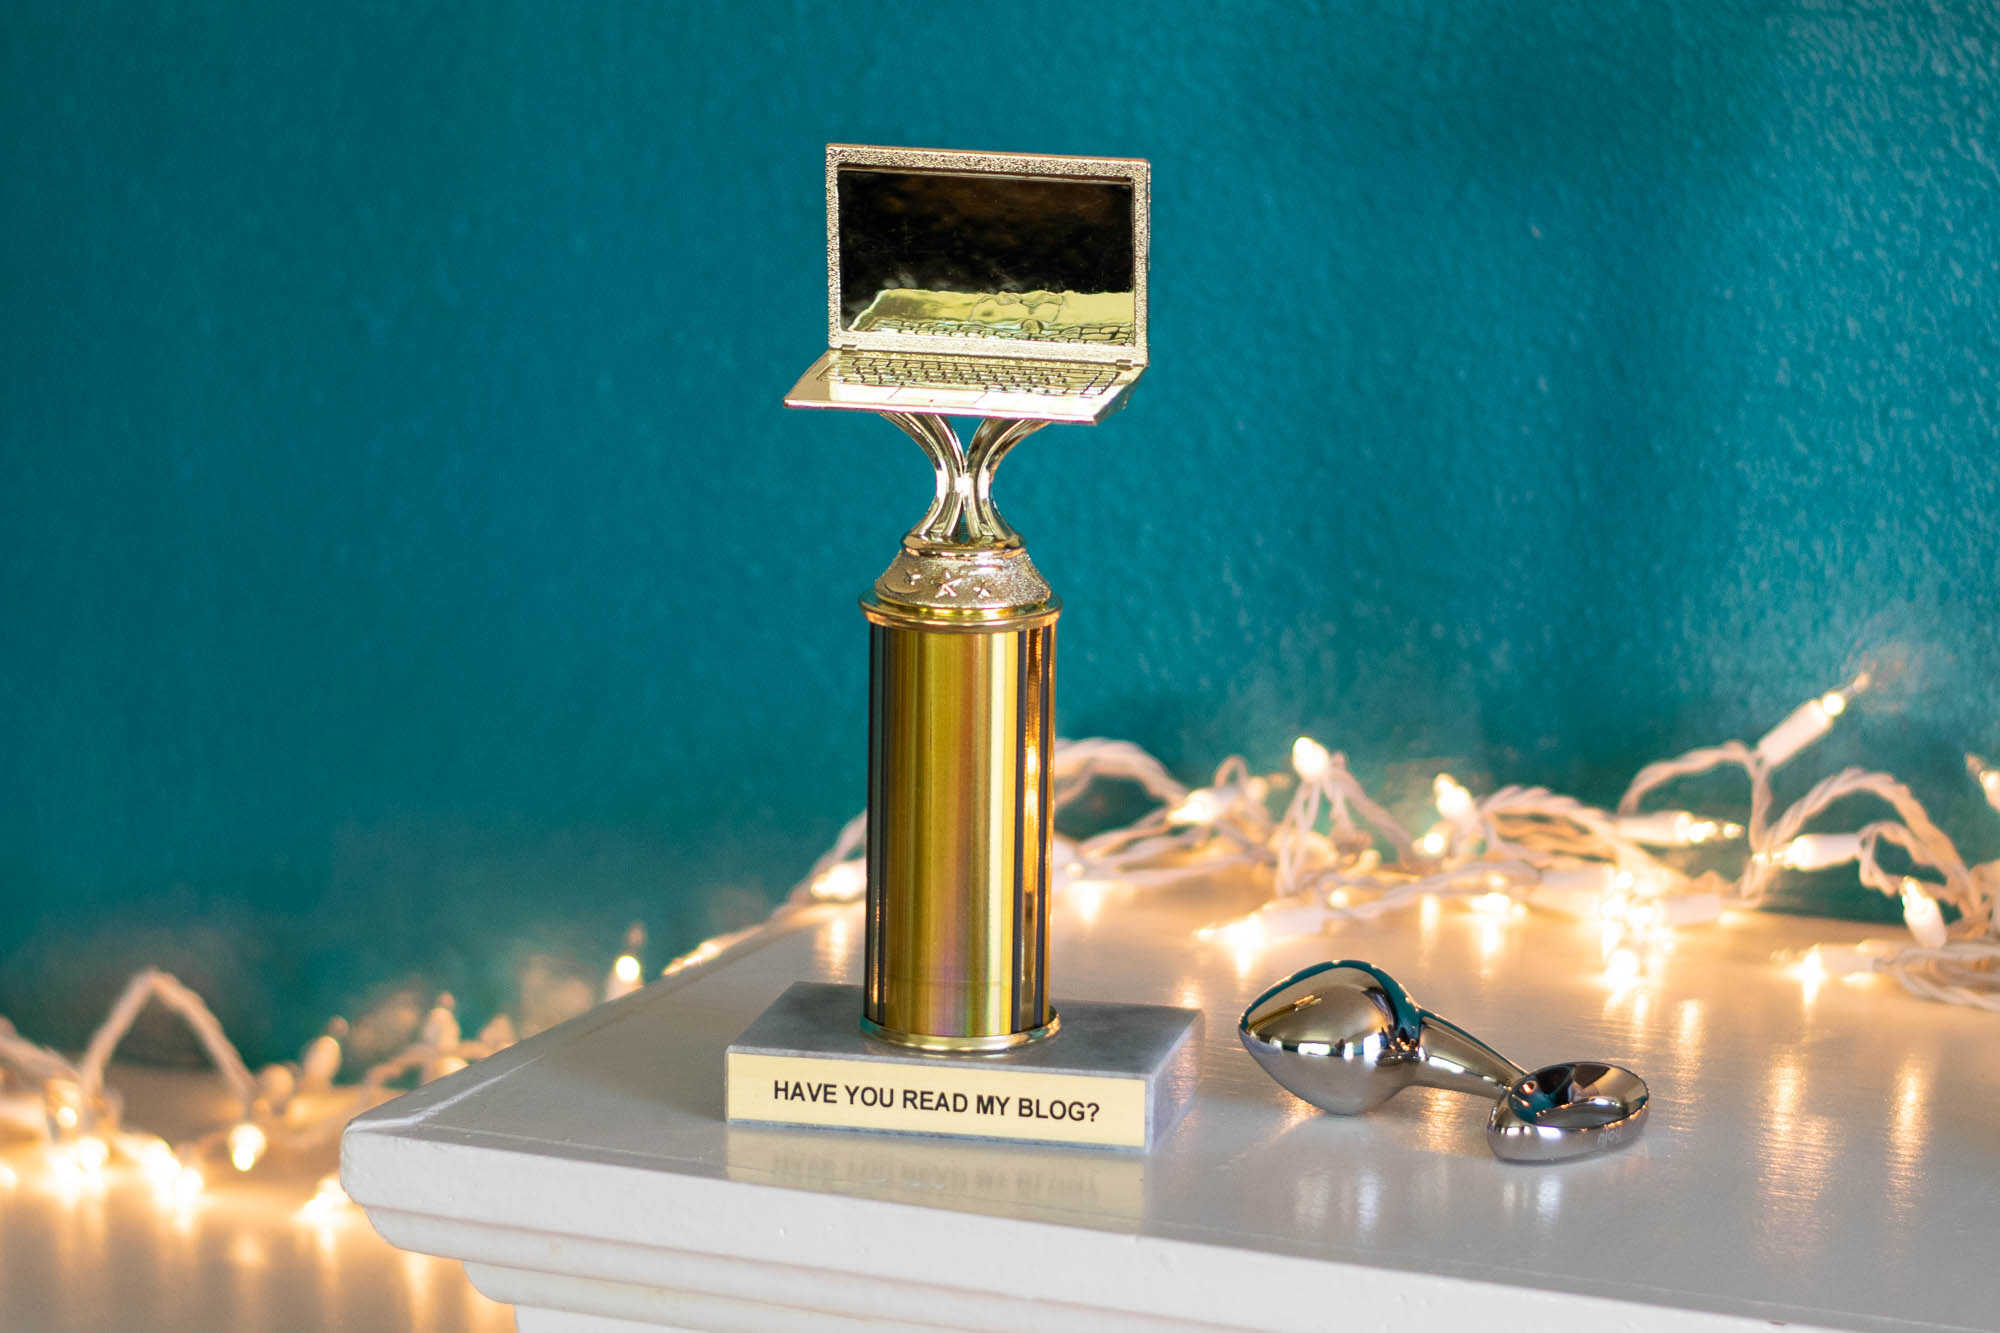 """A trophy with a laptop on top, which reads, """"HAVE YOU READ MY BLOG?"""" Next to it, a stainless steel butt plug."""